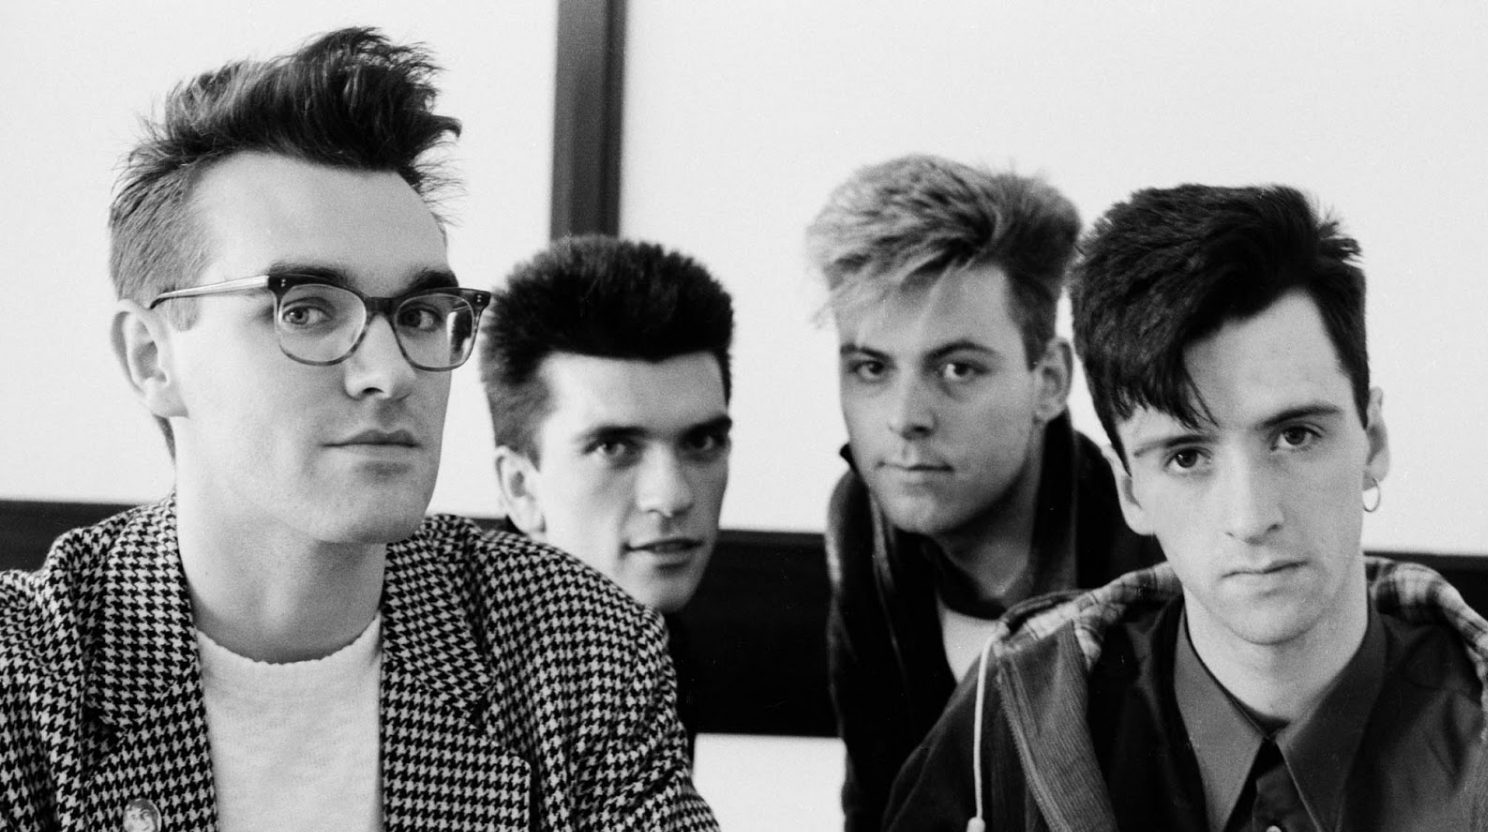 TheSmiths-1985-Terence-Spencer-e1516610216917